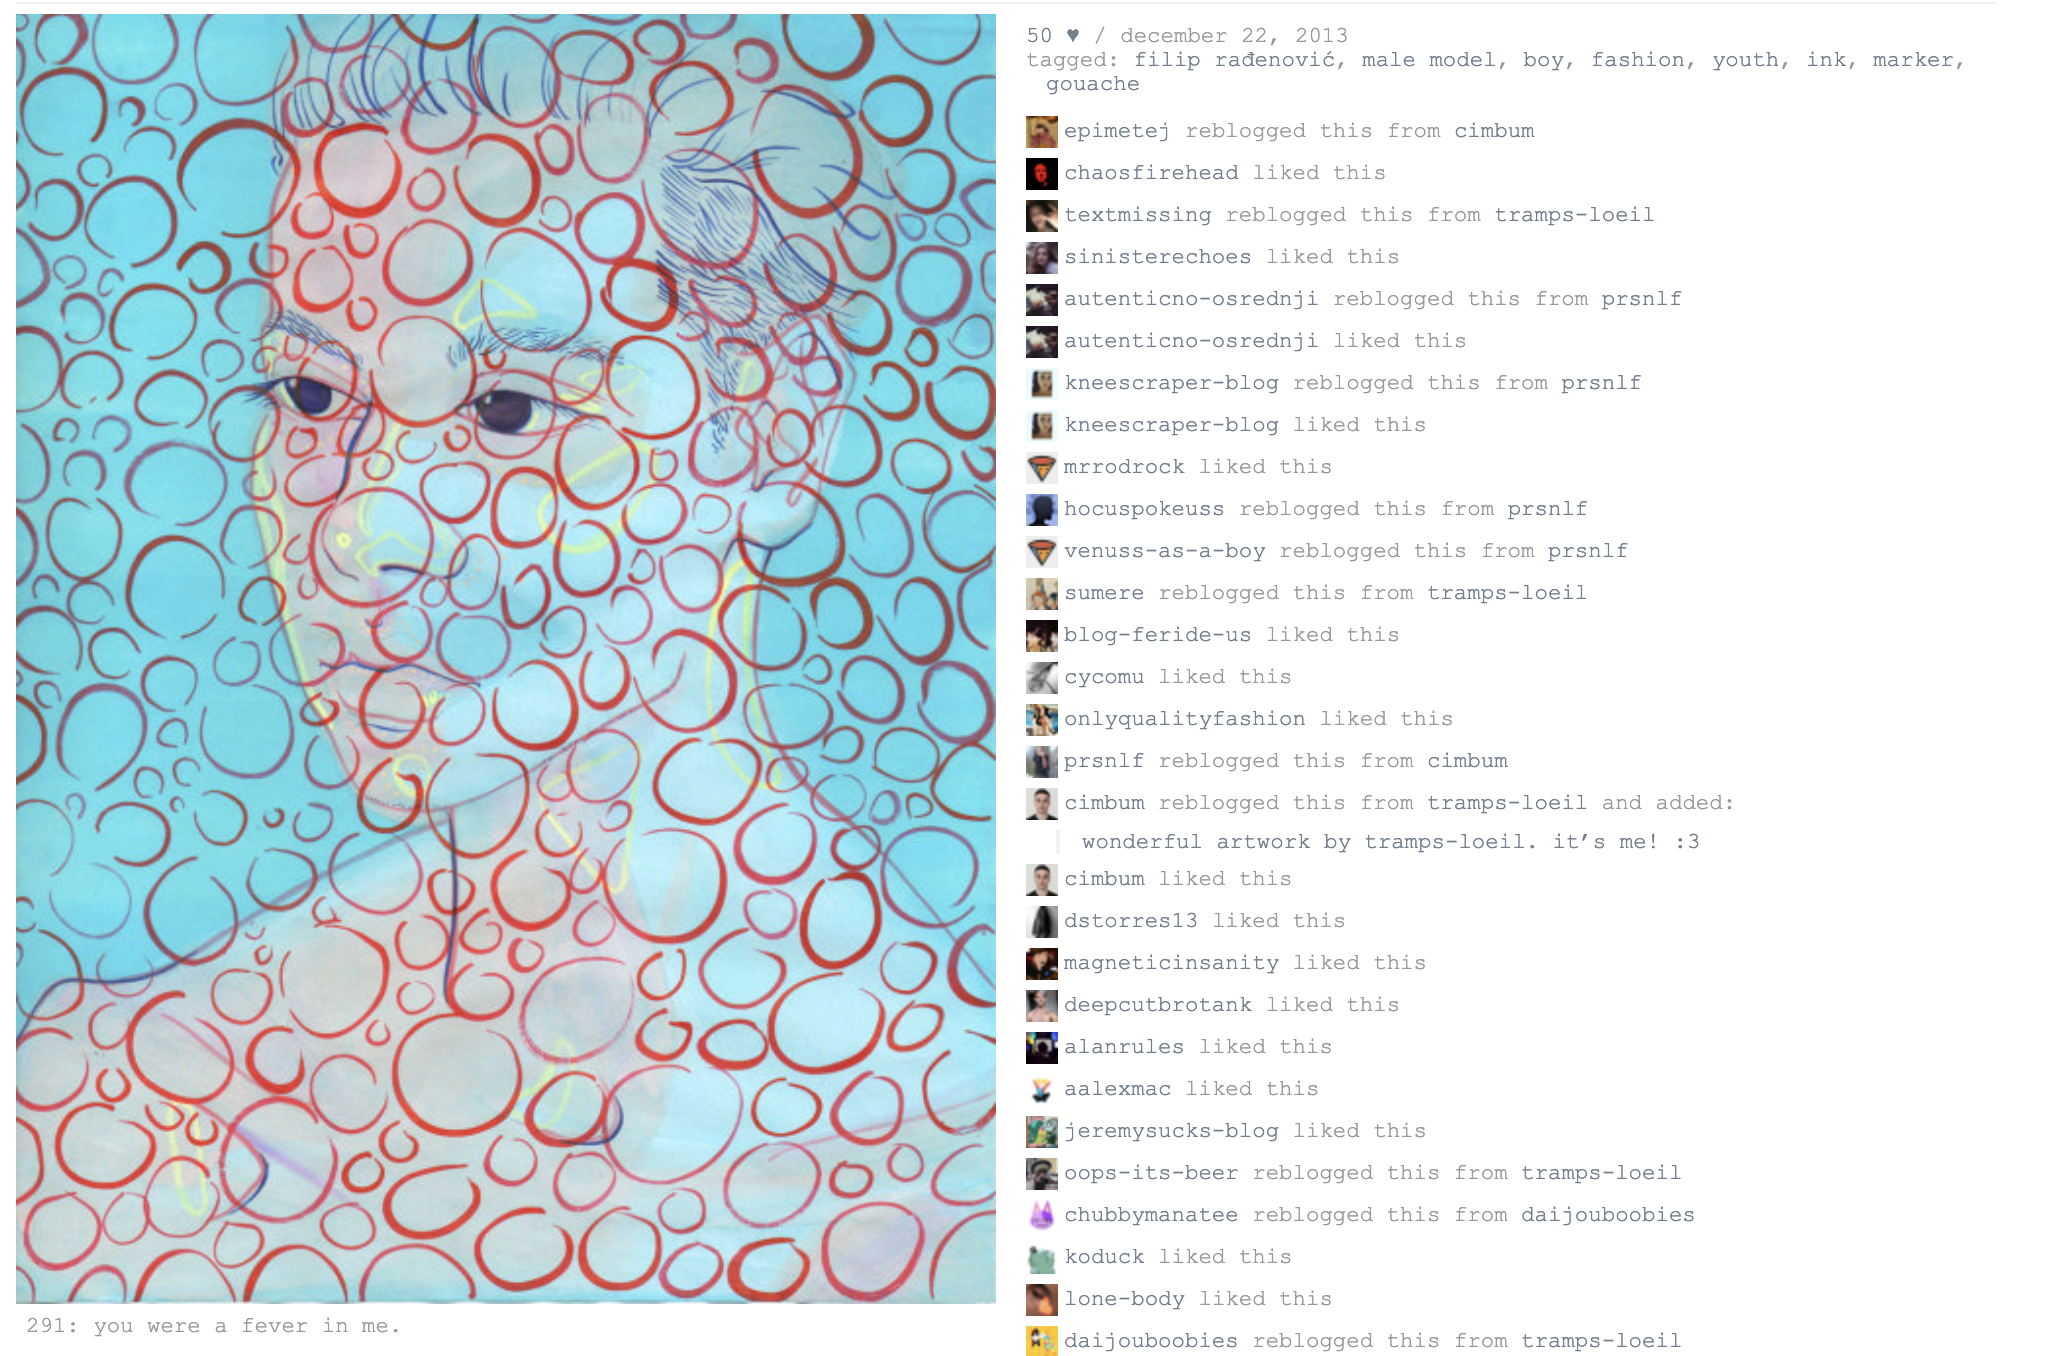 A painting side-by-side with a list of comments and reblog notifications.